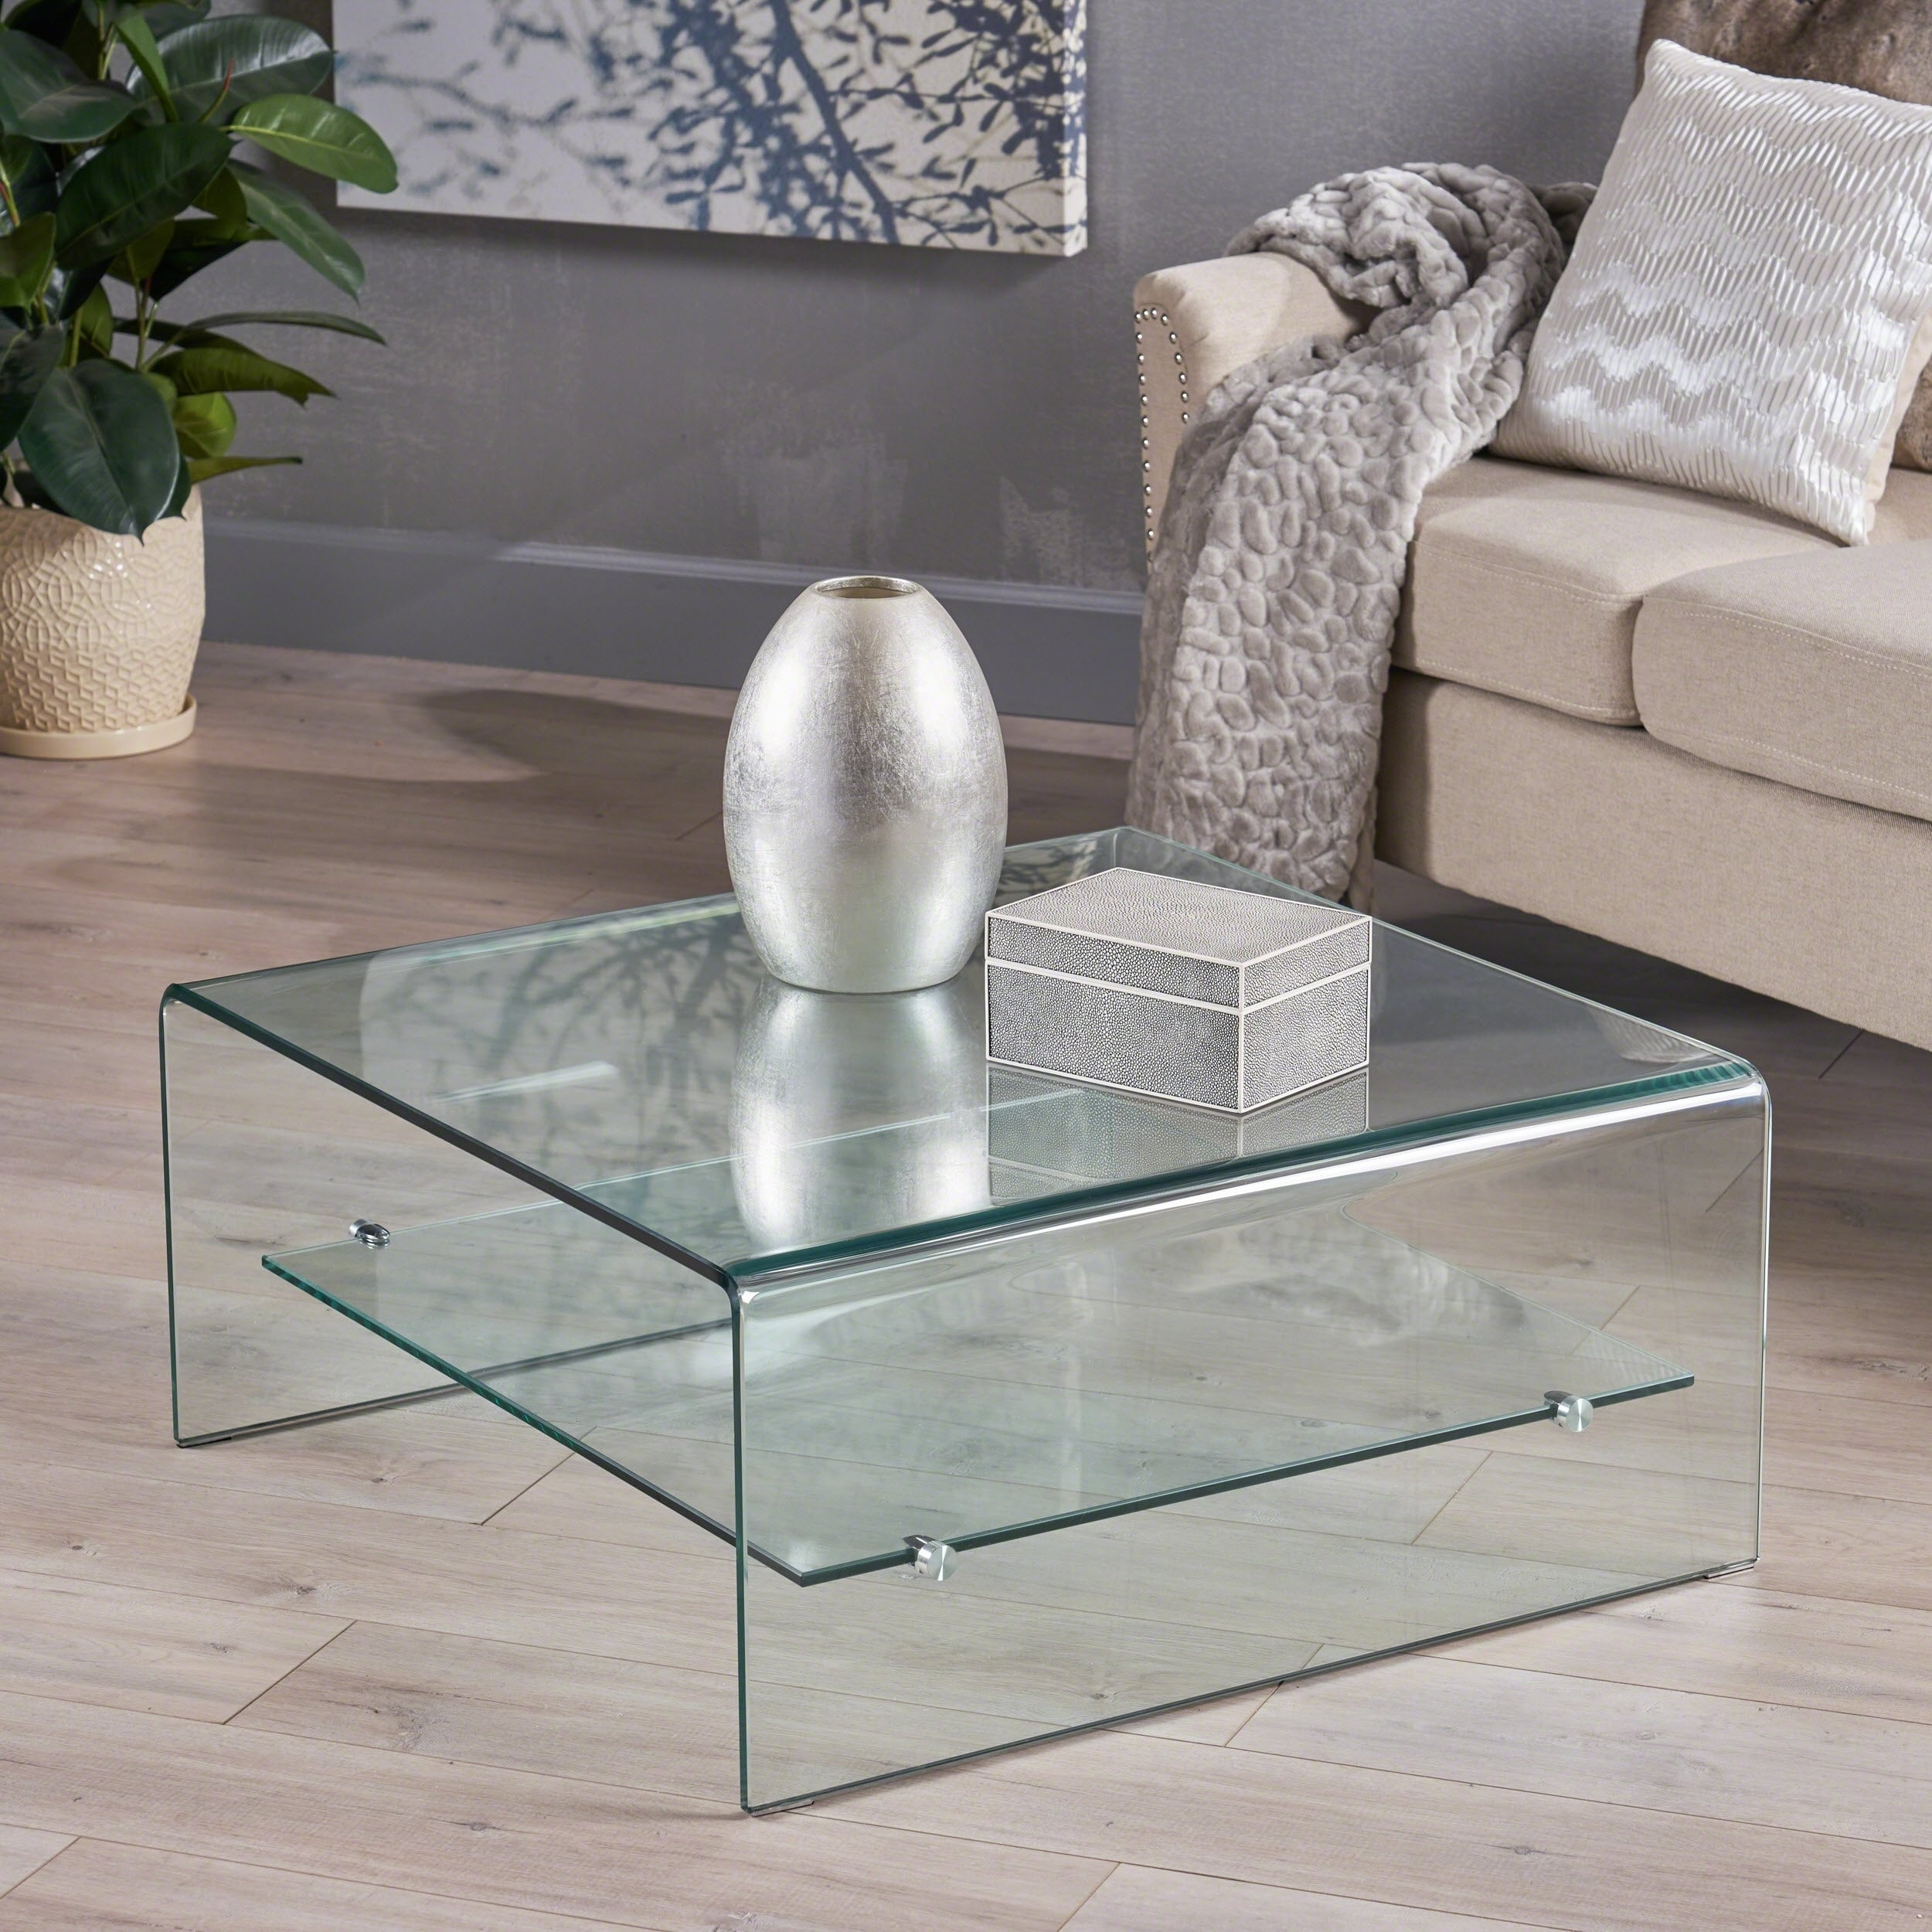 Picture of: Ramona Square Glass Coffee Table With Shelf By Christopher Knight Home Overstock 11152128